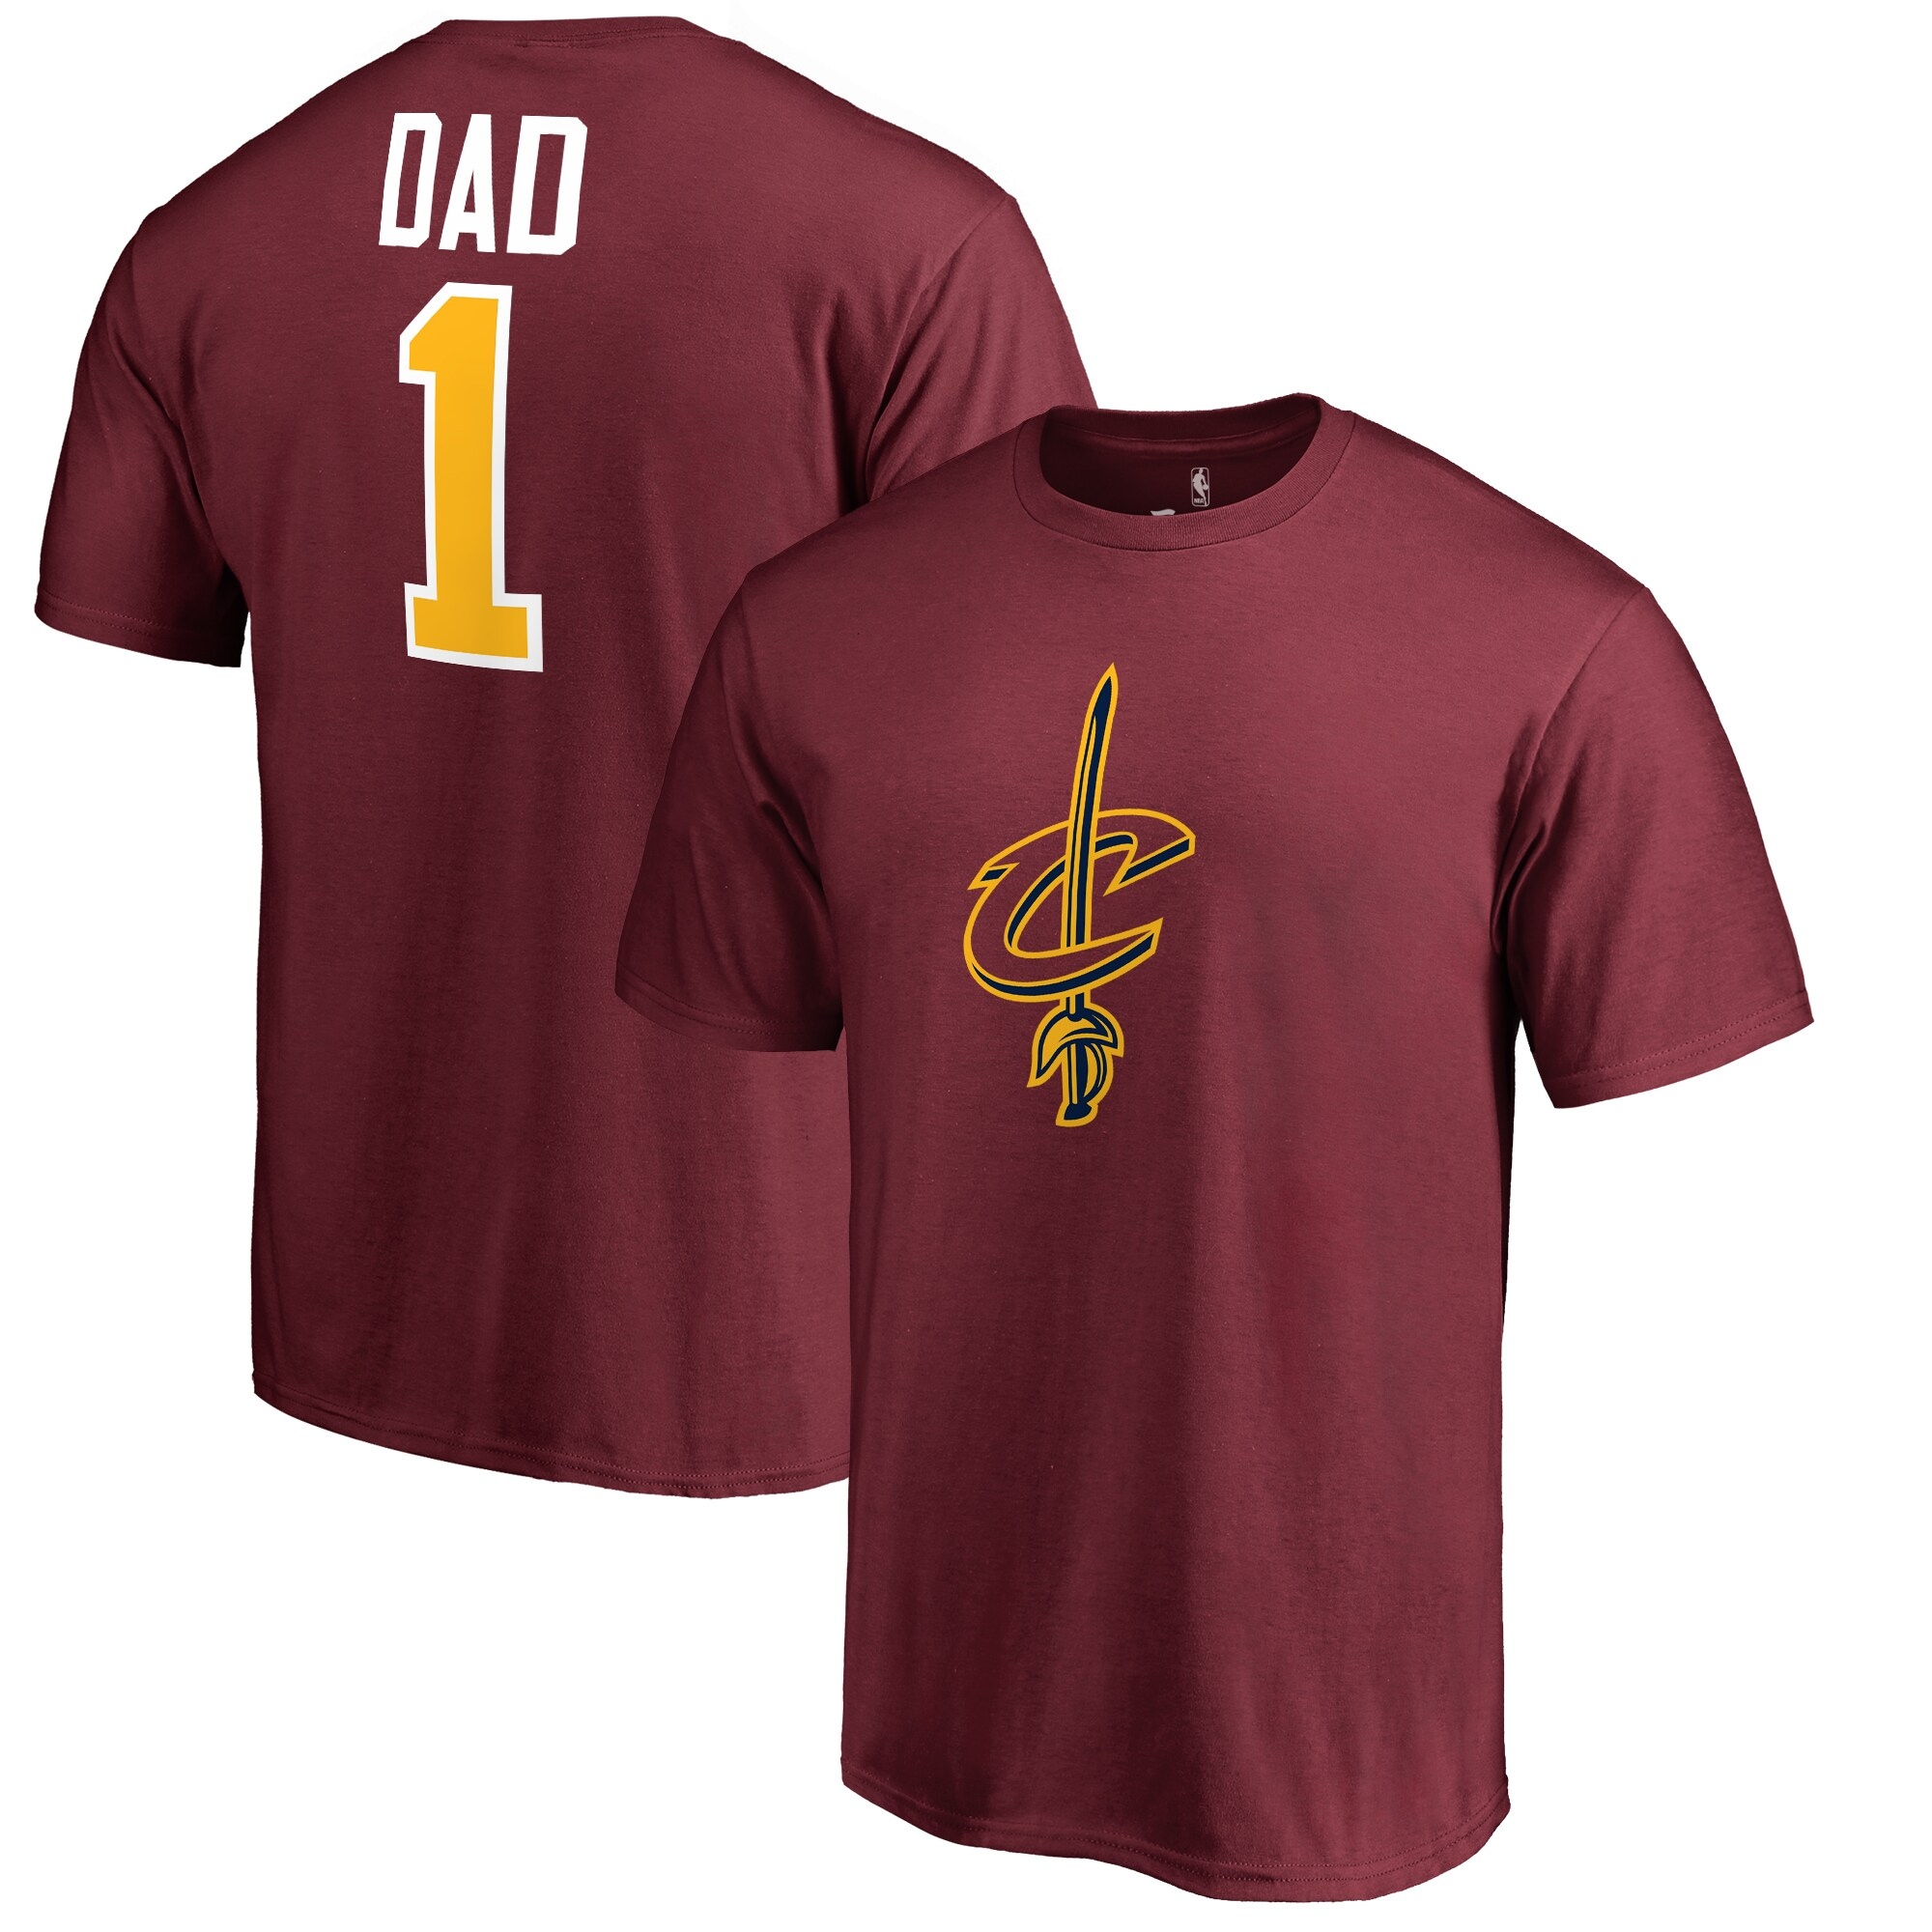 Cleveland Cavaliers #1 Dad T-Shirt - Maroon